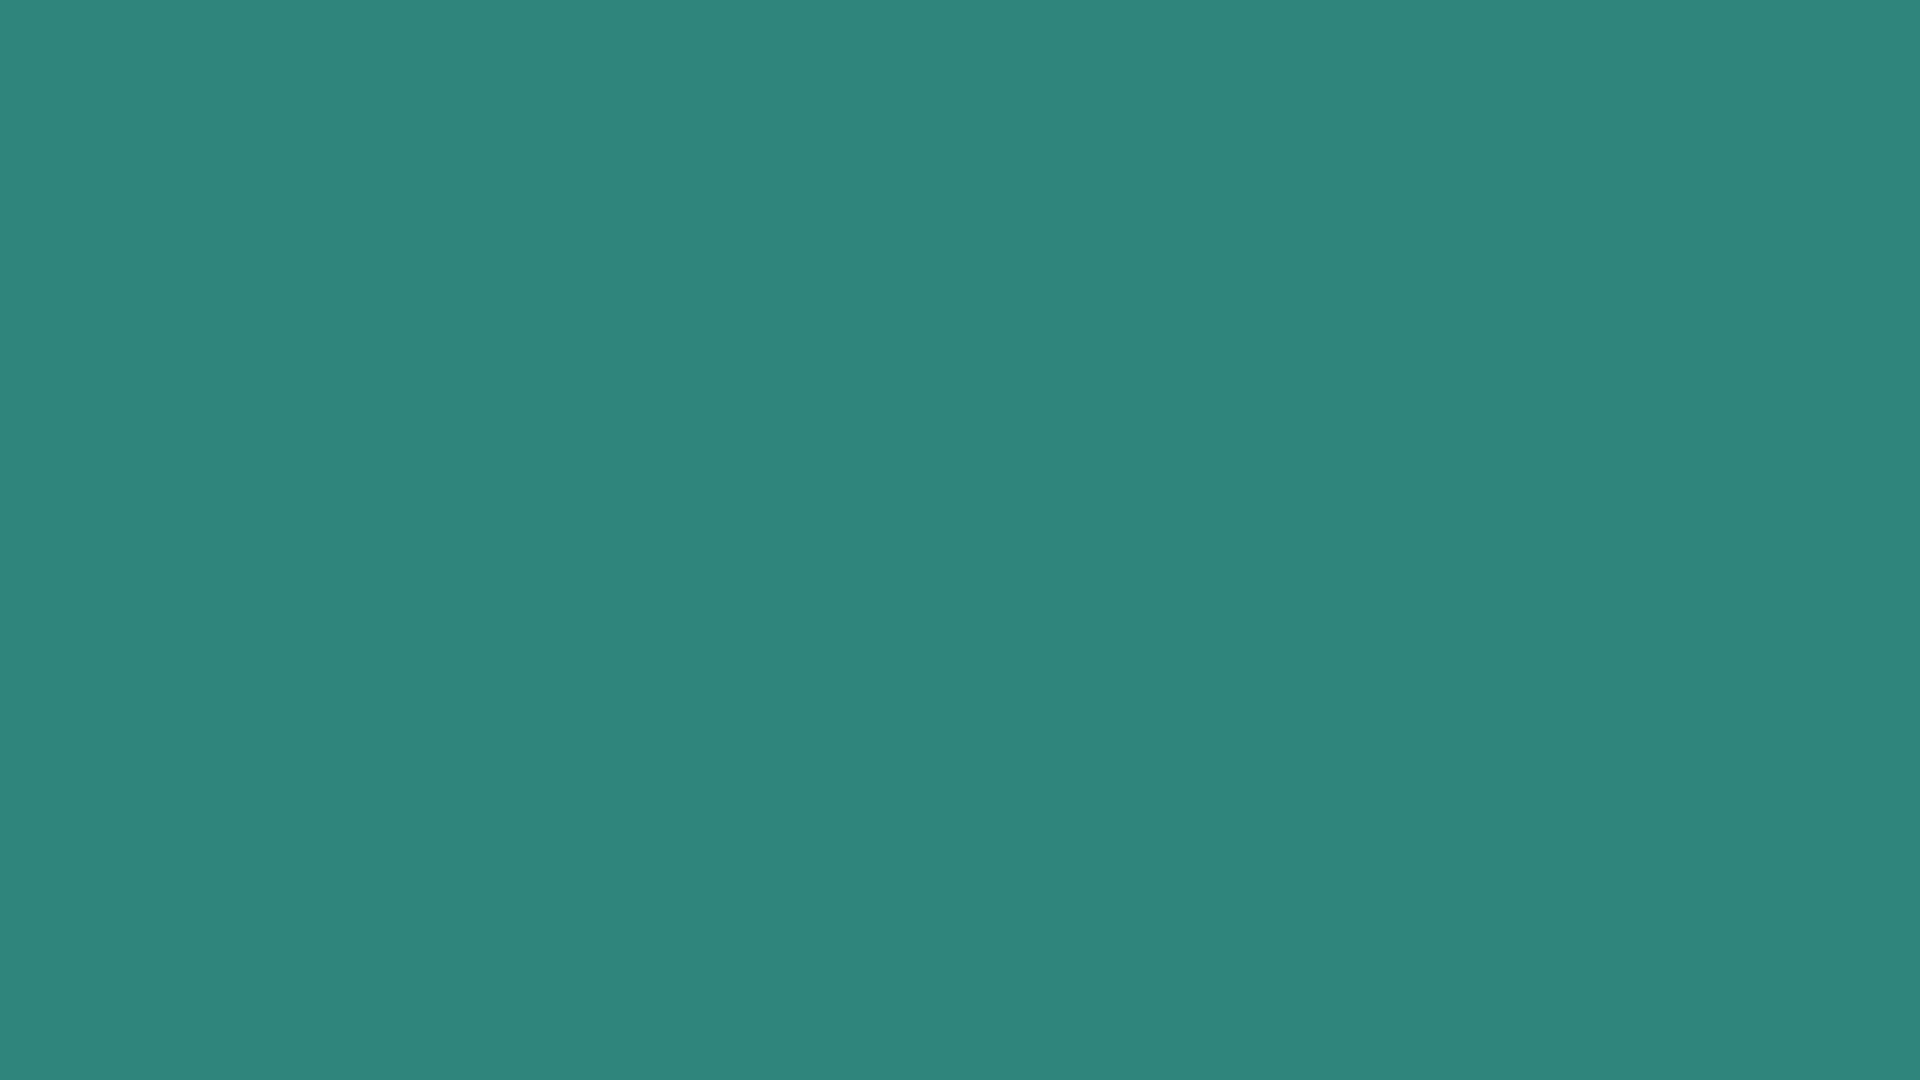 1920x1080 Celadon Green Solid Color Background